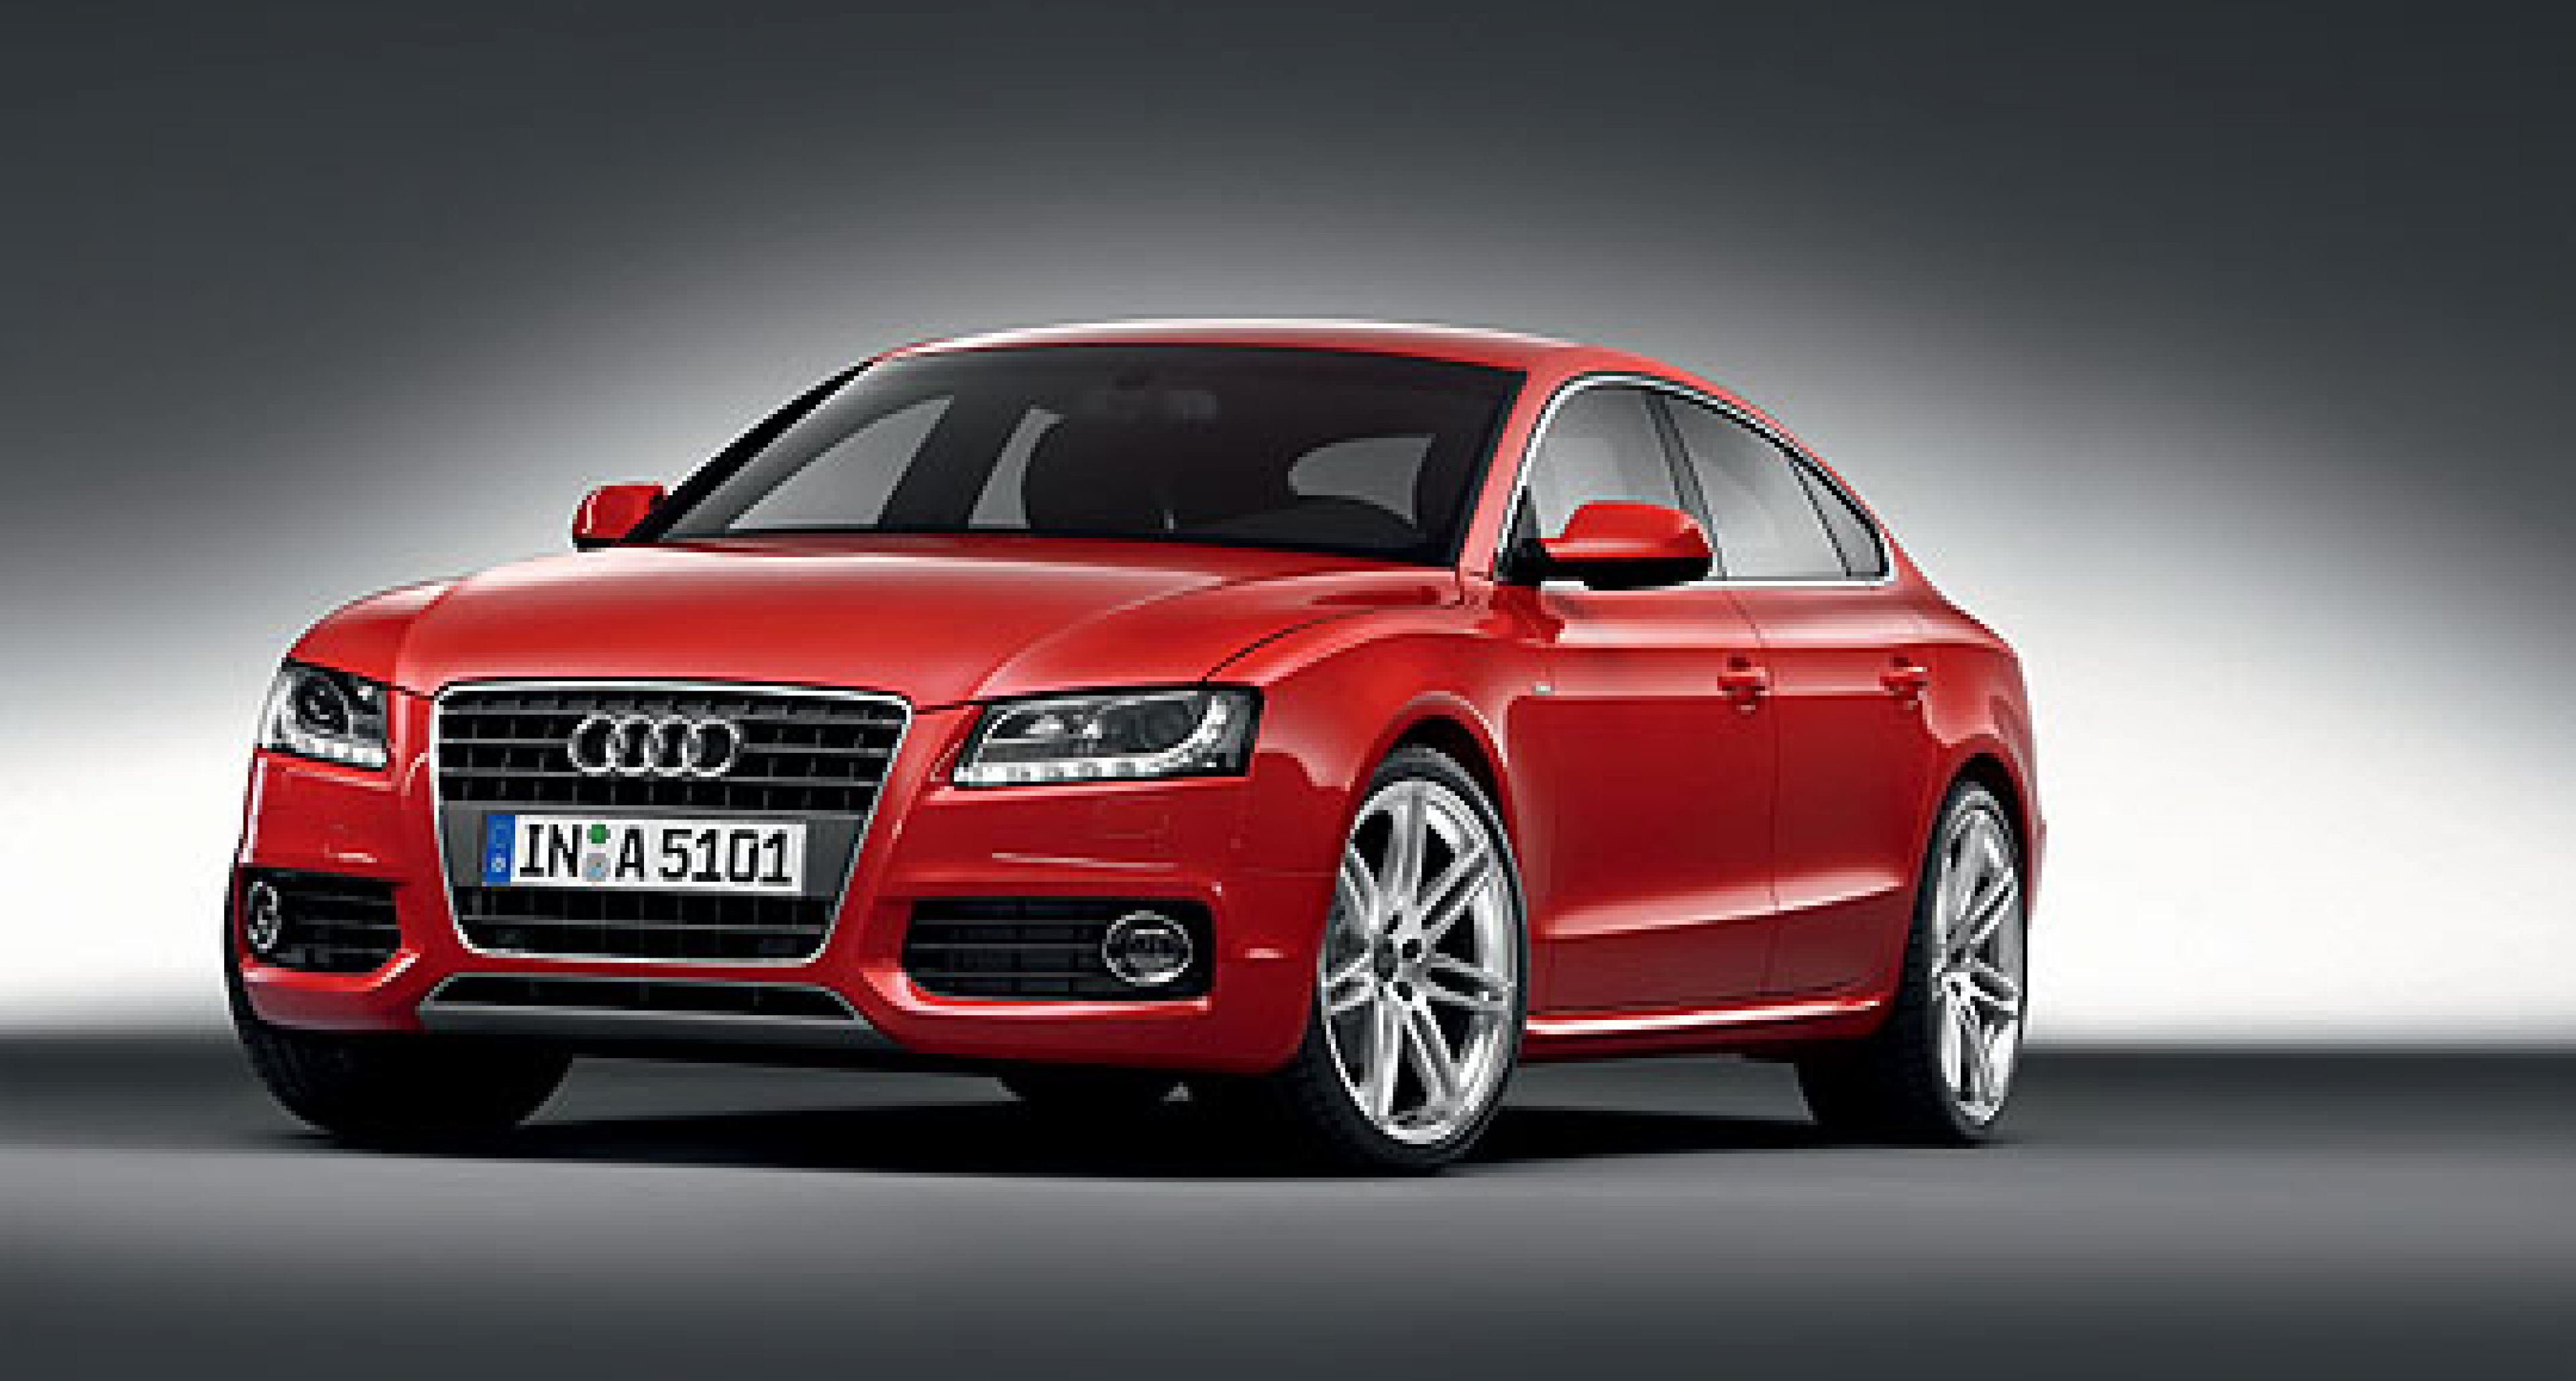 Audi A5 Sportback: The Full Picture